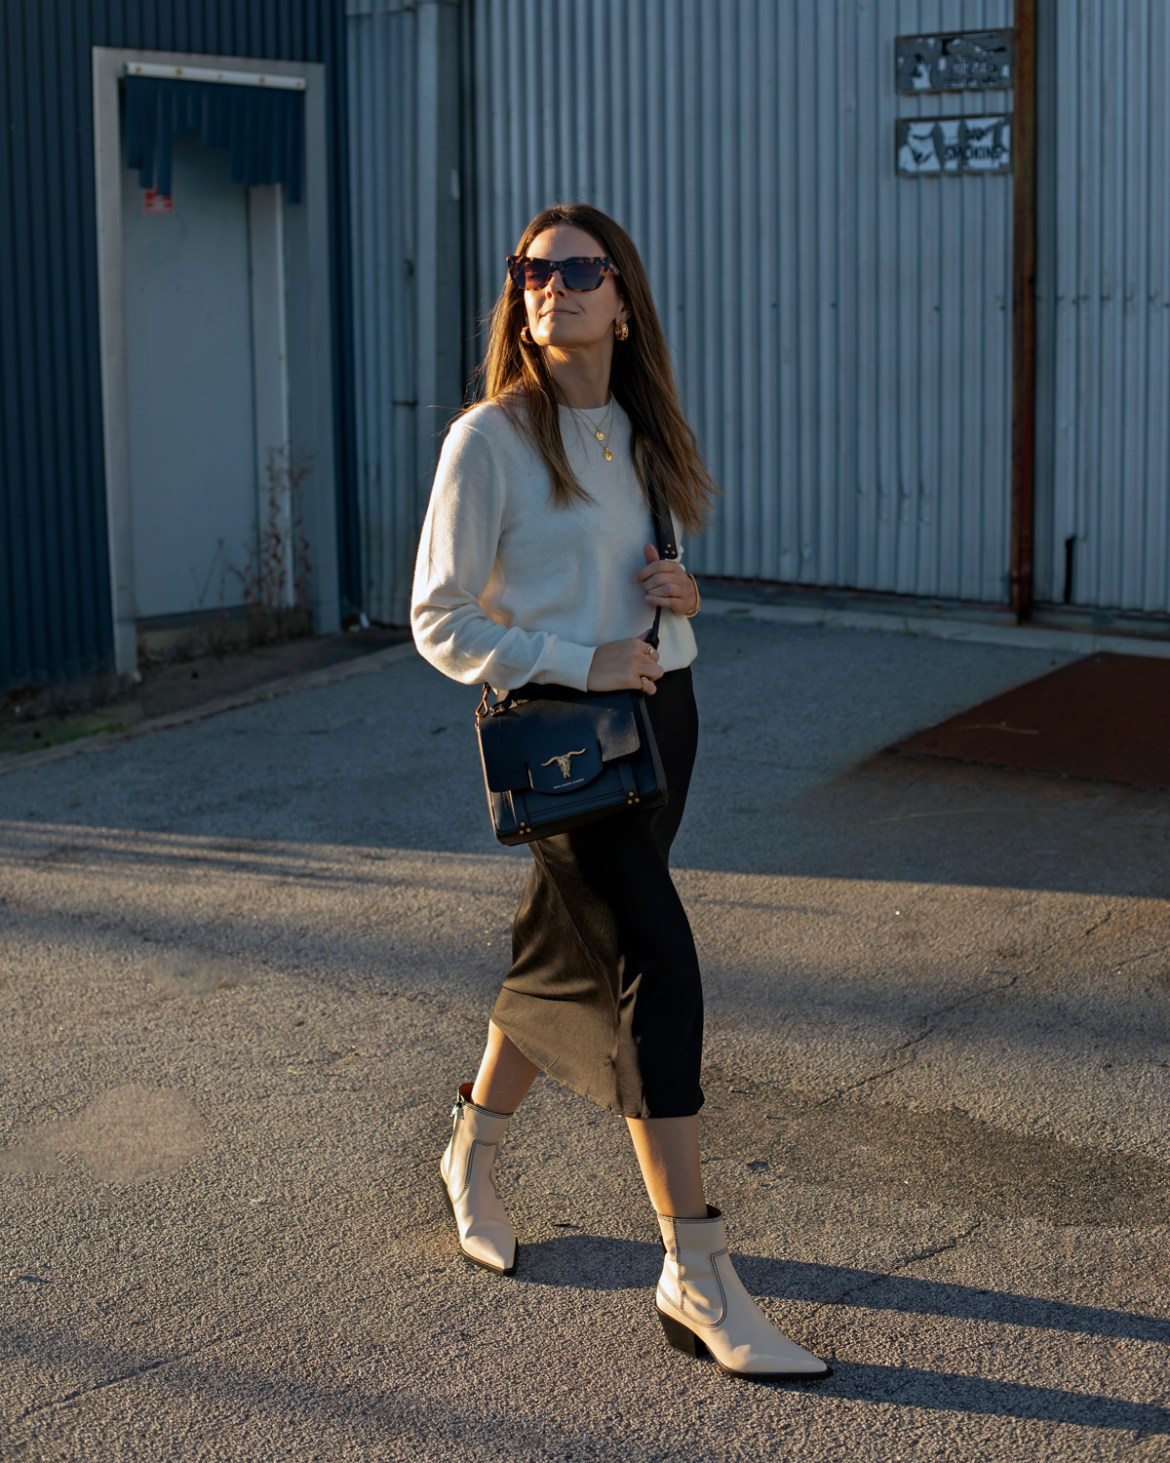 cream knit, crossbody bag and cream ankle boots outfit idea